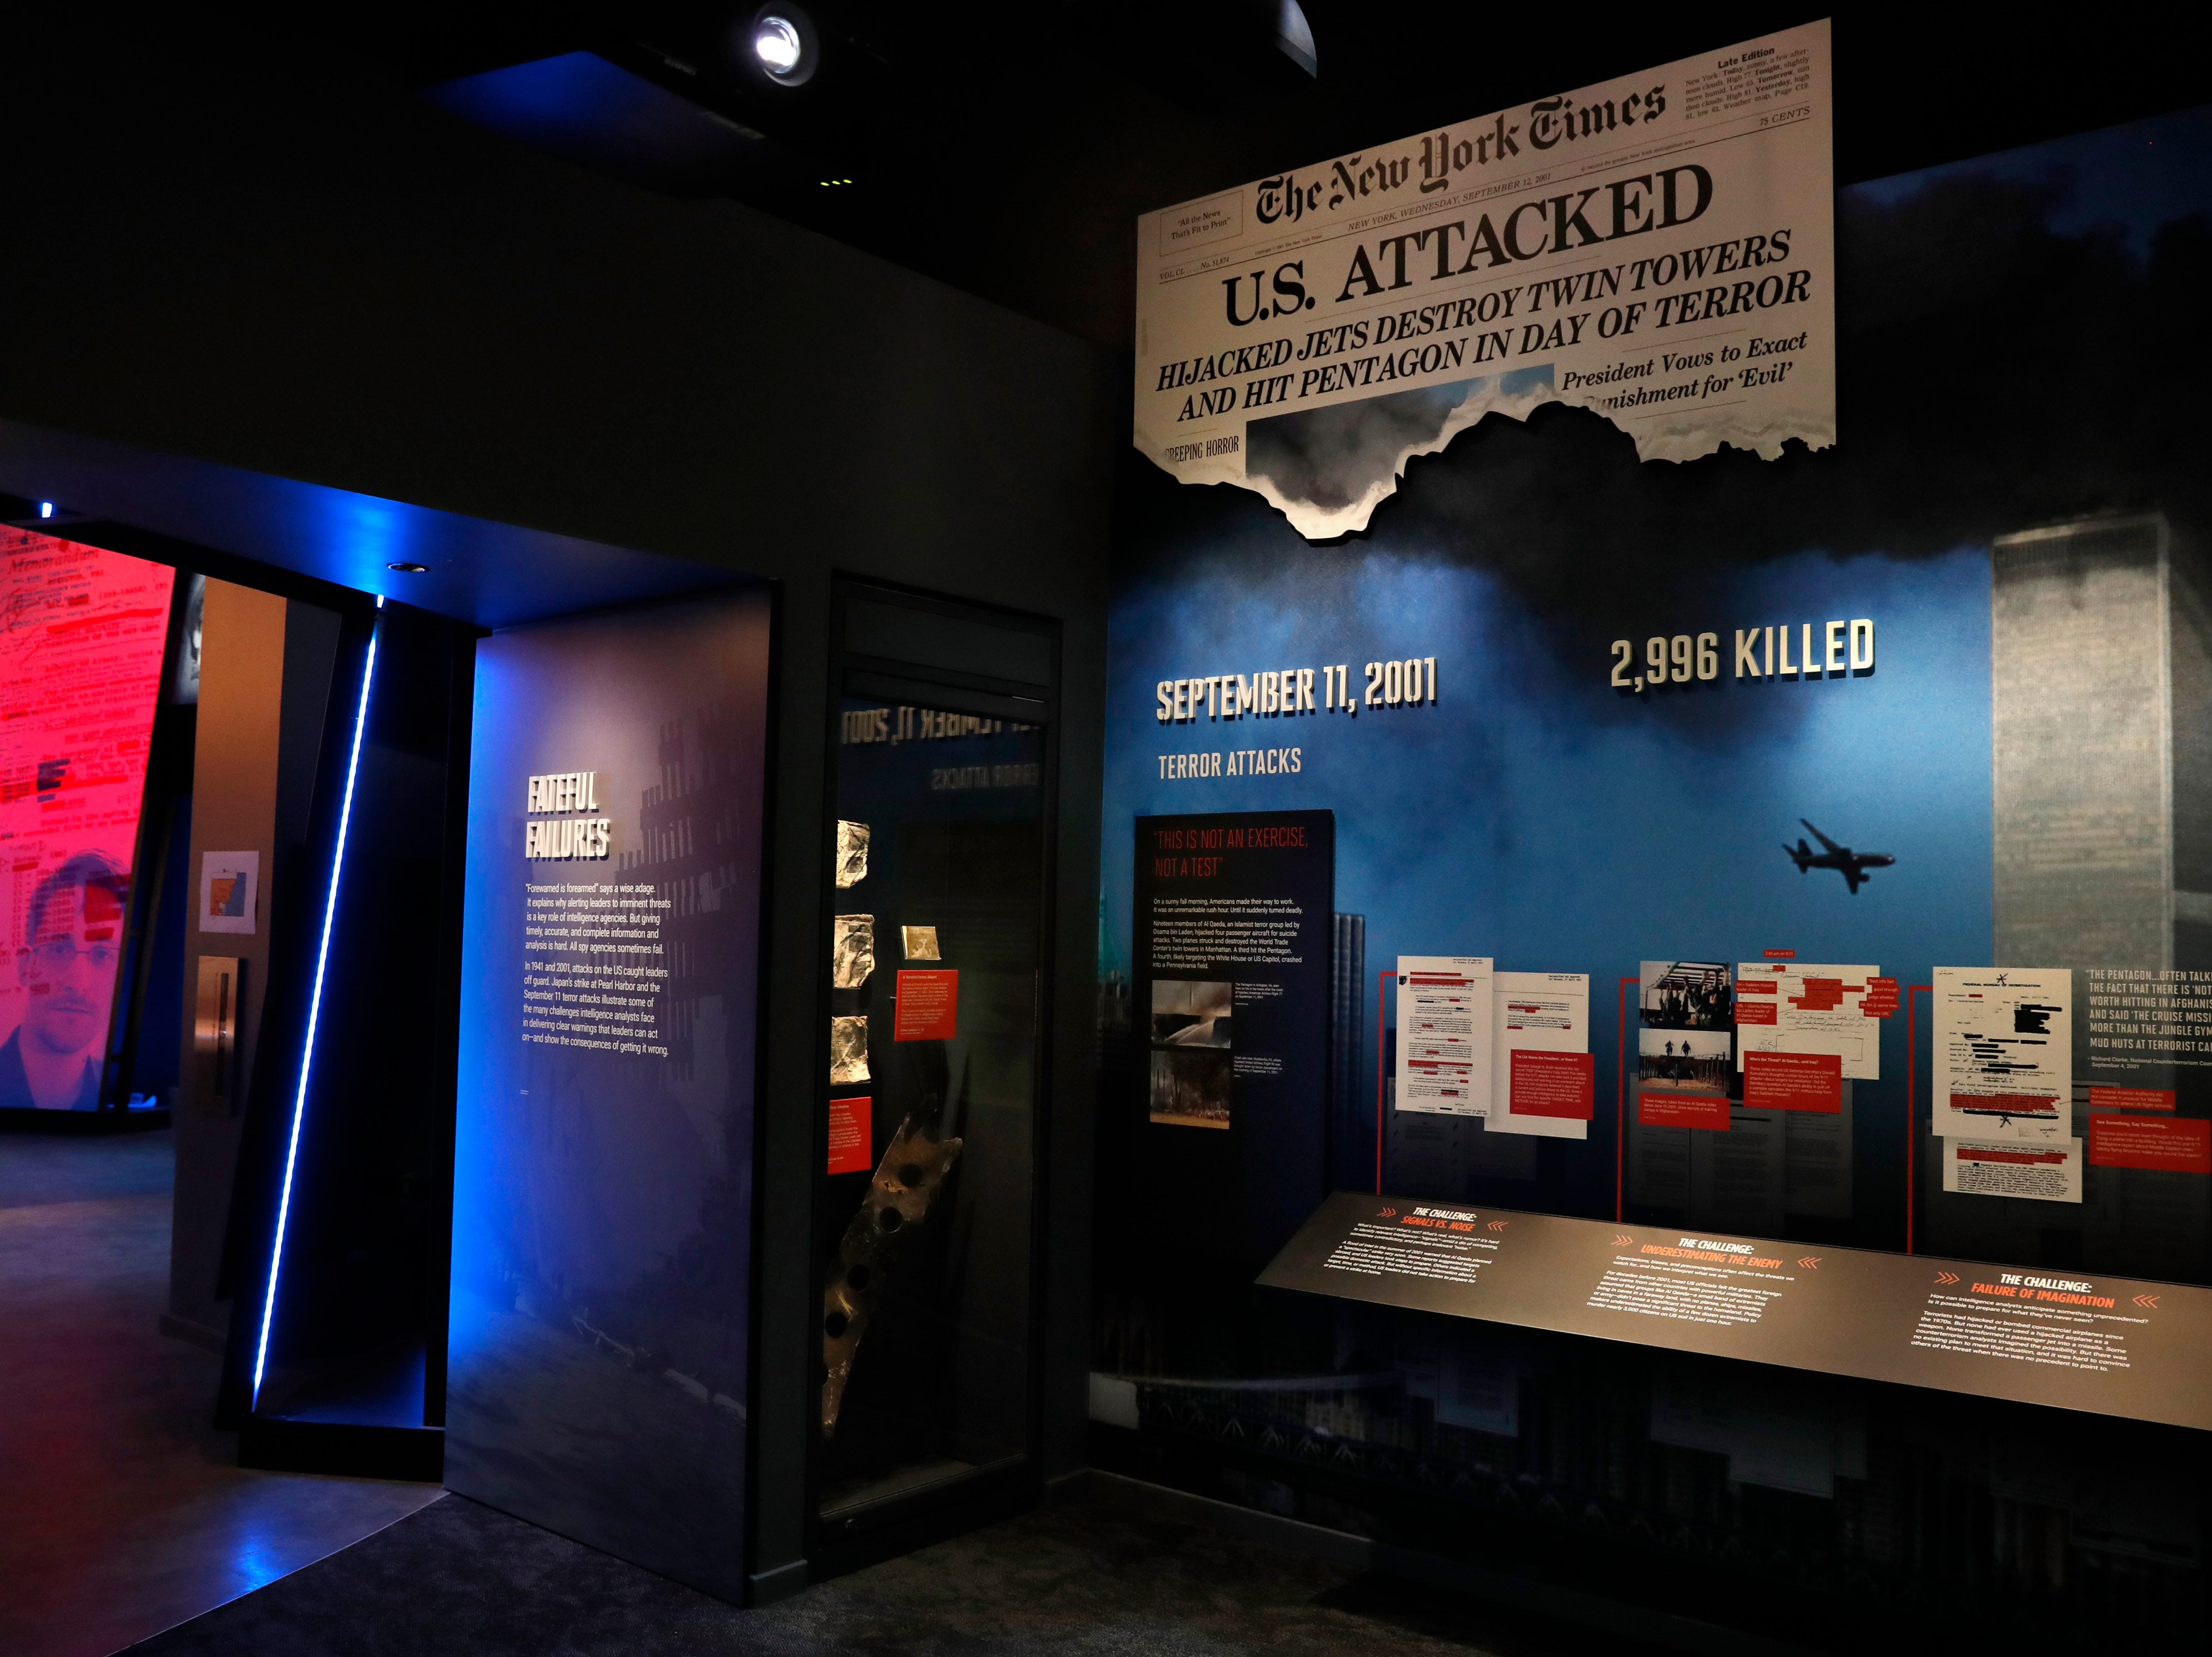 Items from 9/11, including the flight manuals and one boarding pass used by the hijackers of the planes that went into the World Trade Center on September 11, 2001,  are among the items that will be shown at the new International Spy Museum. The items are being displayed for the first time and are on loan from the FBI.